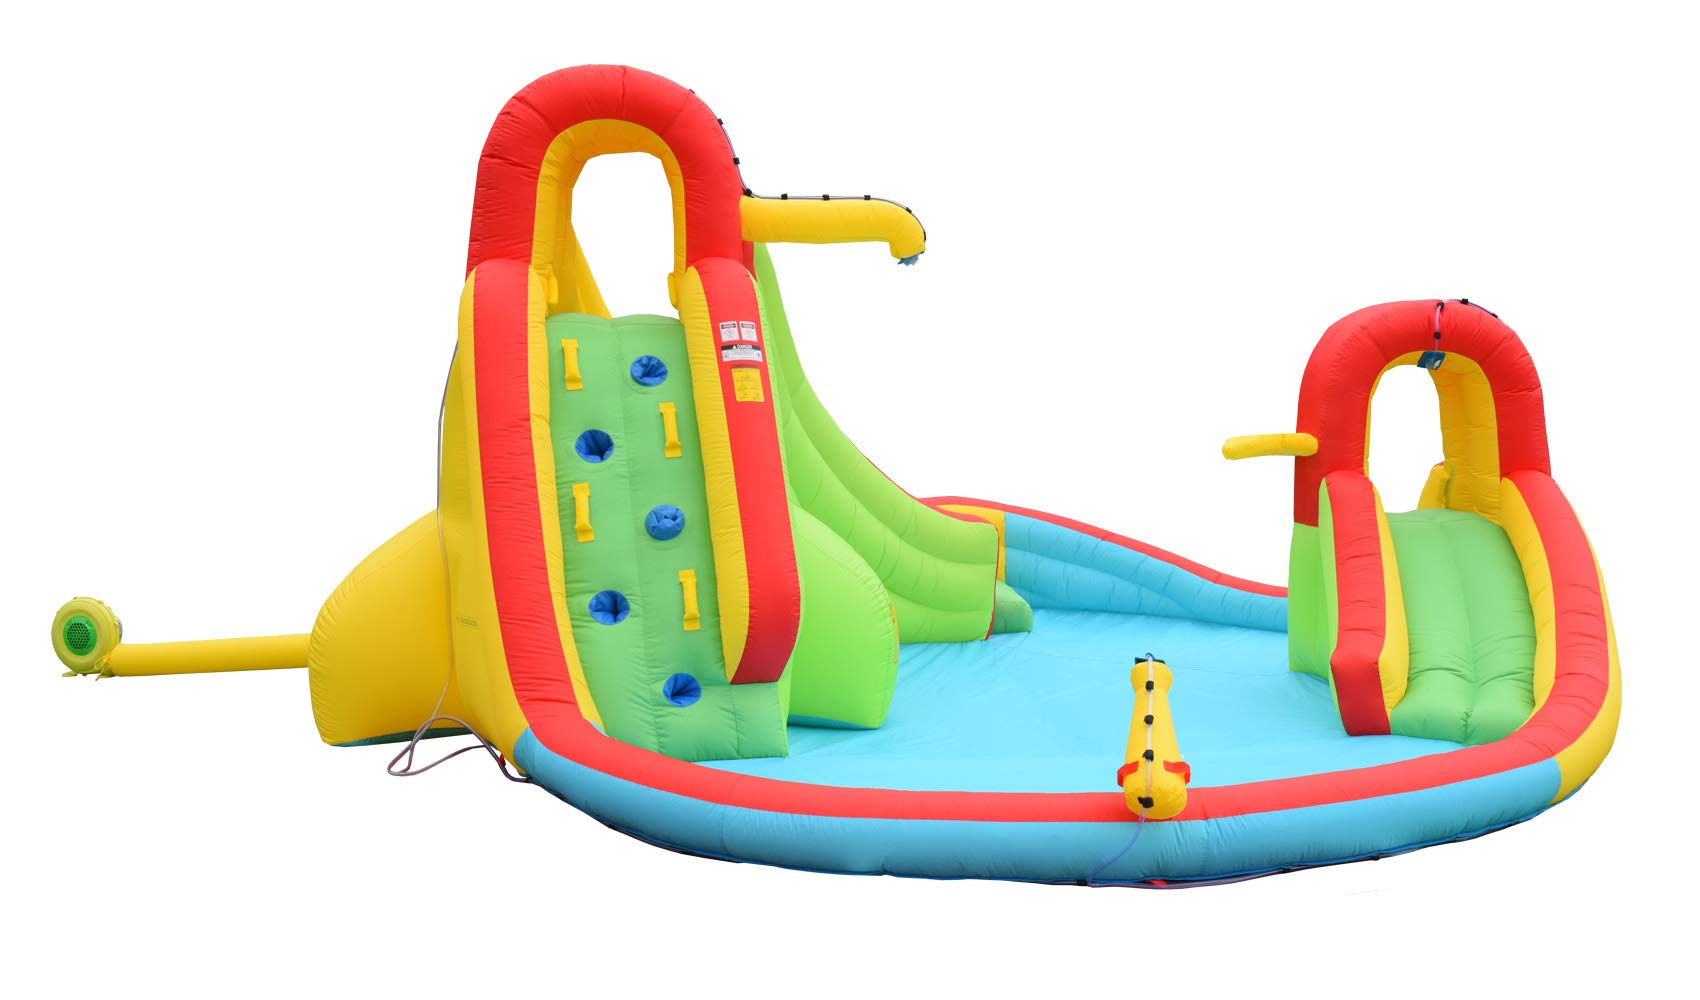 Inflatable Water Slide Well Fun Bounce House With Climbing Wall, Two Slides & Splash Pool Includes Blower Motor by WELLFUNTIME (Image #7)